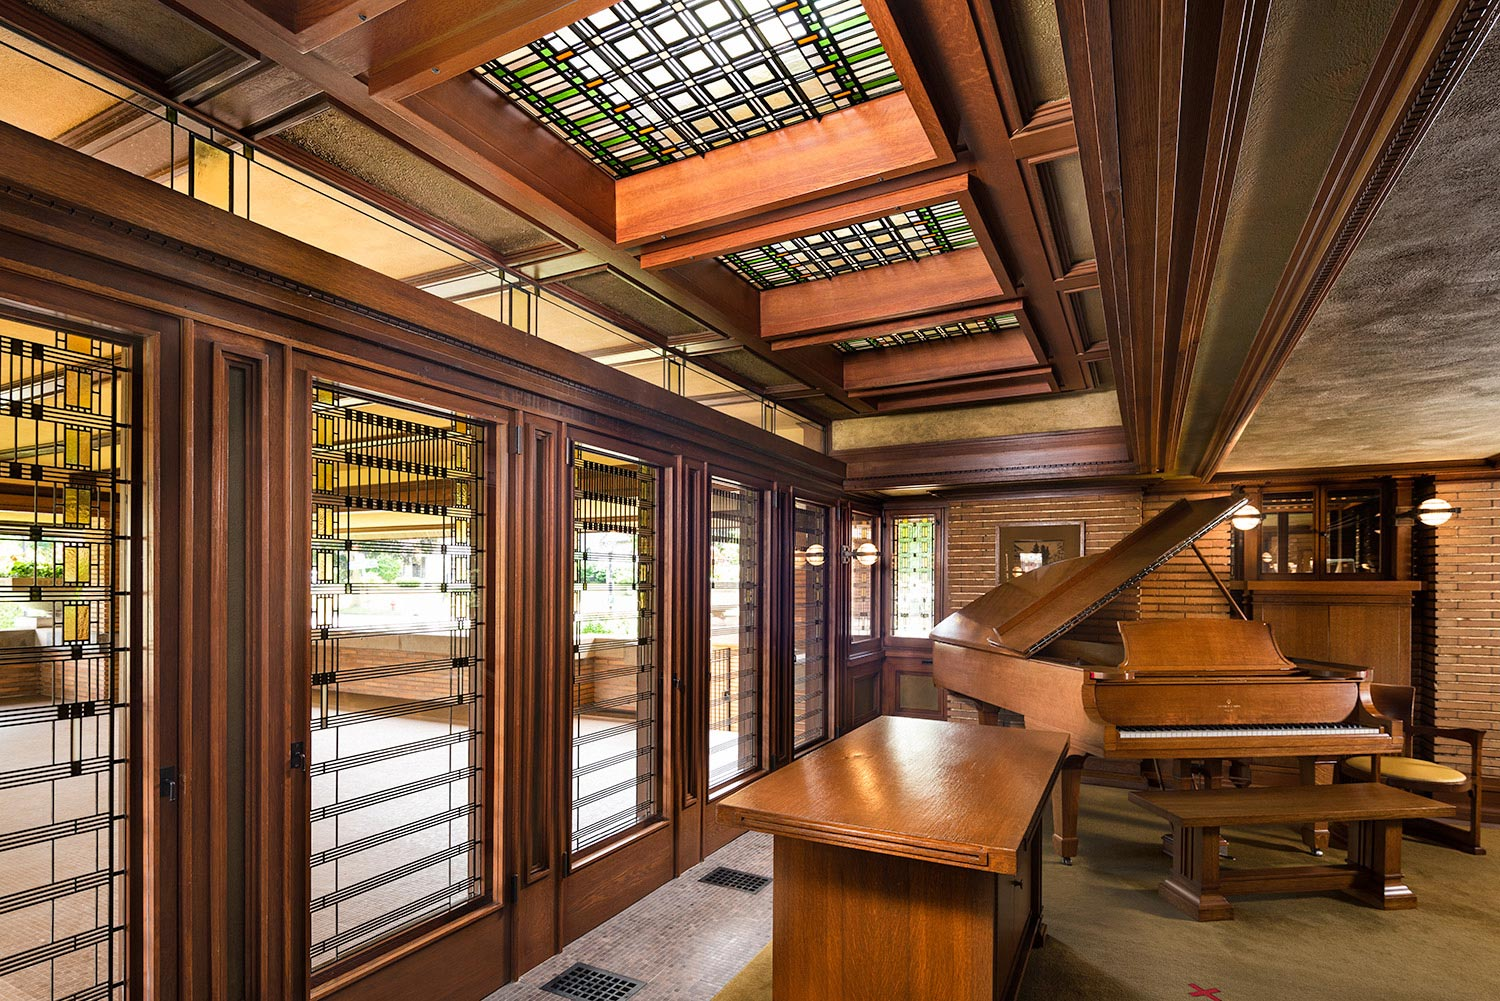 Hunting for Windows in a House by Frank Lloyd Wright